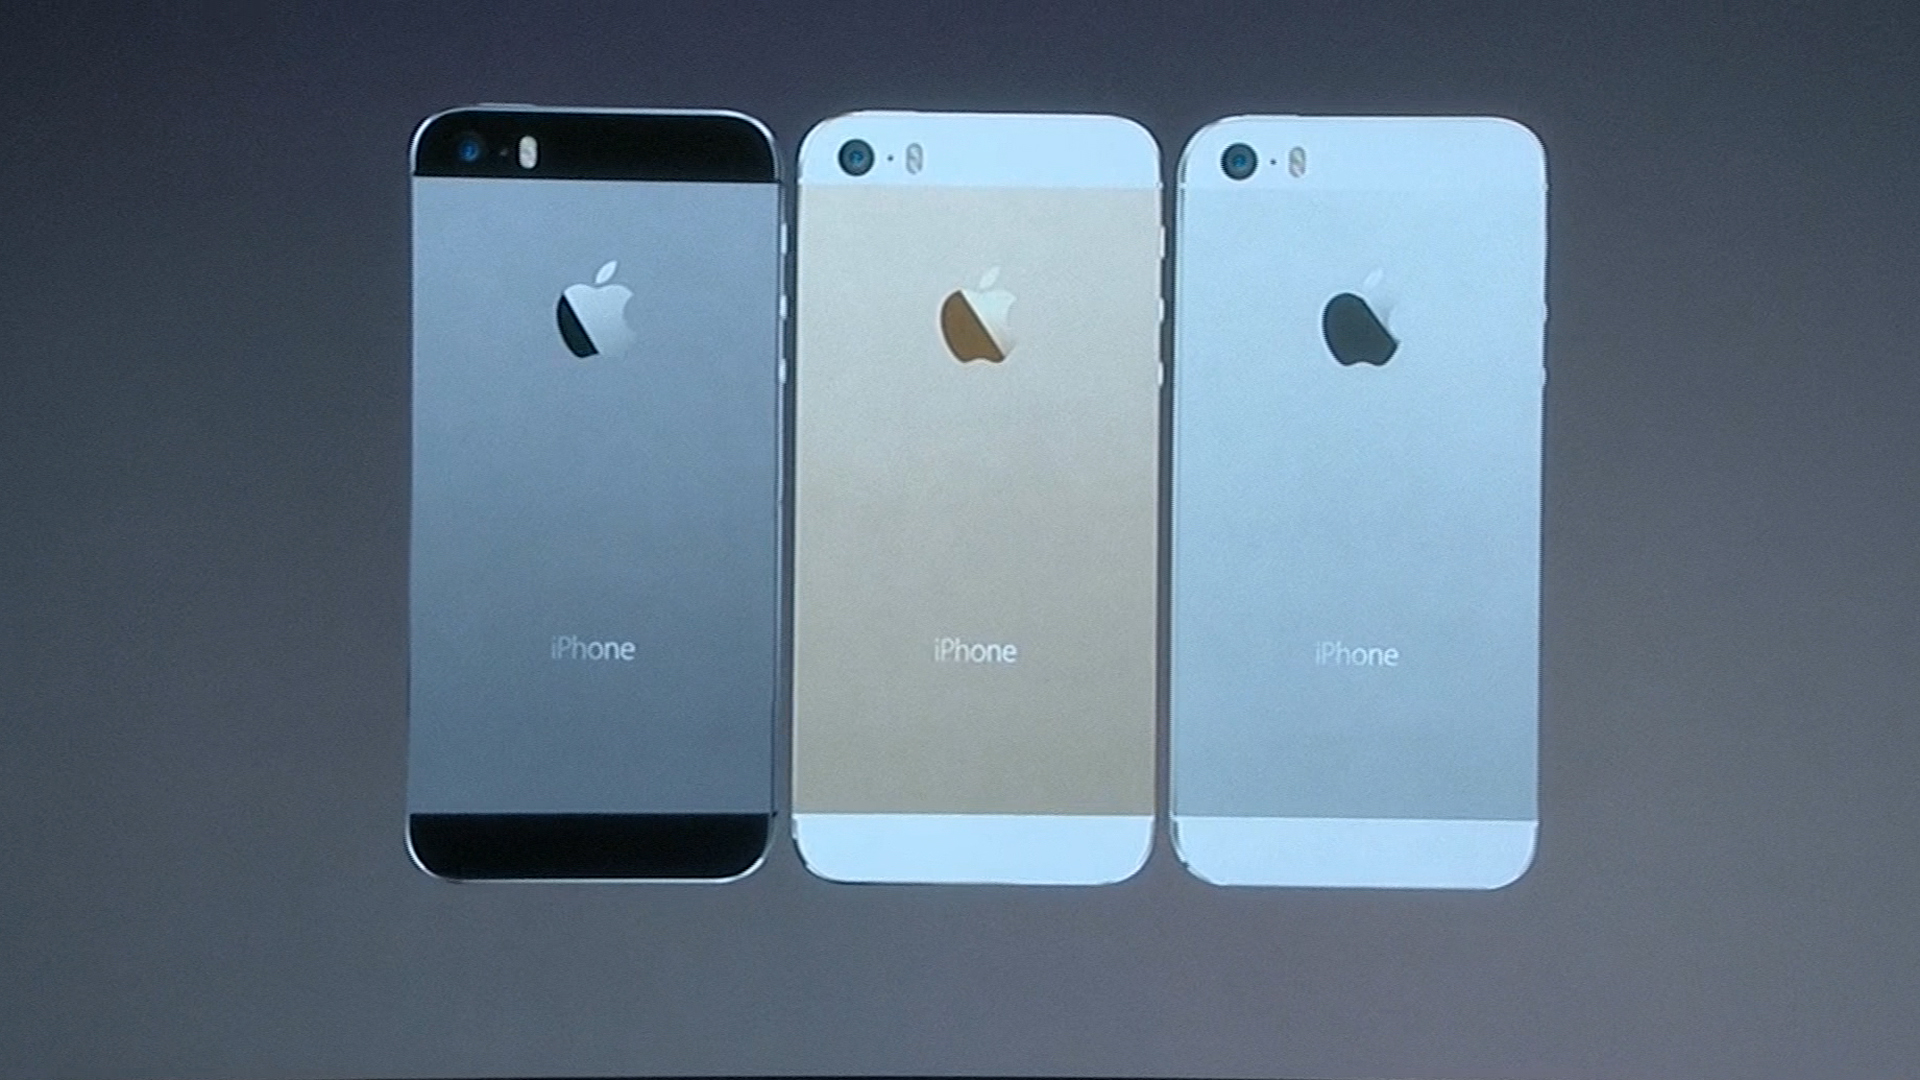 iphone 5 colors apple s iphone 5s features new colors fingerprint scanner 10971